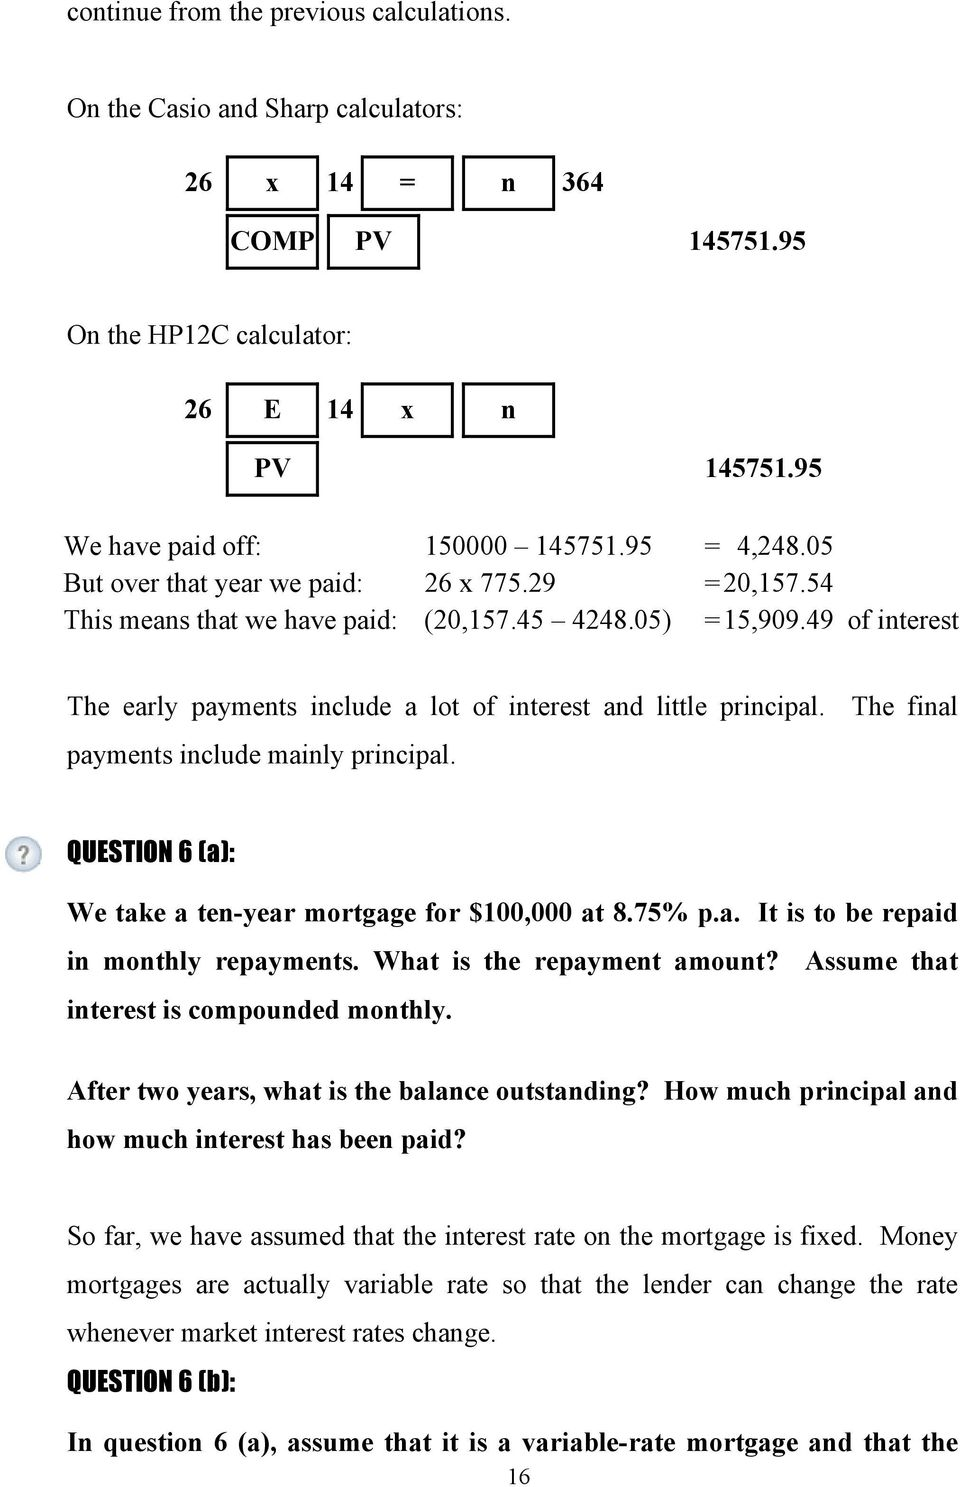 The final payments include mainly principal. QUESTION 6 (a): We take a ten-year mortgage for $100,000 at 8.75% p.a. It is to be repaid in monthly repayments. What is the repayment amount?